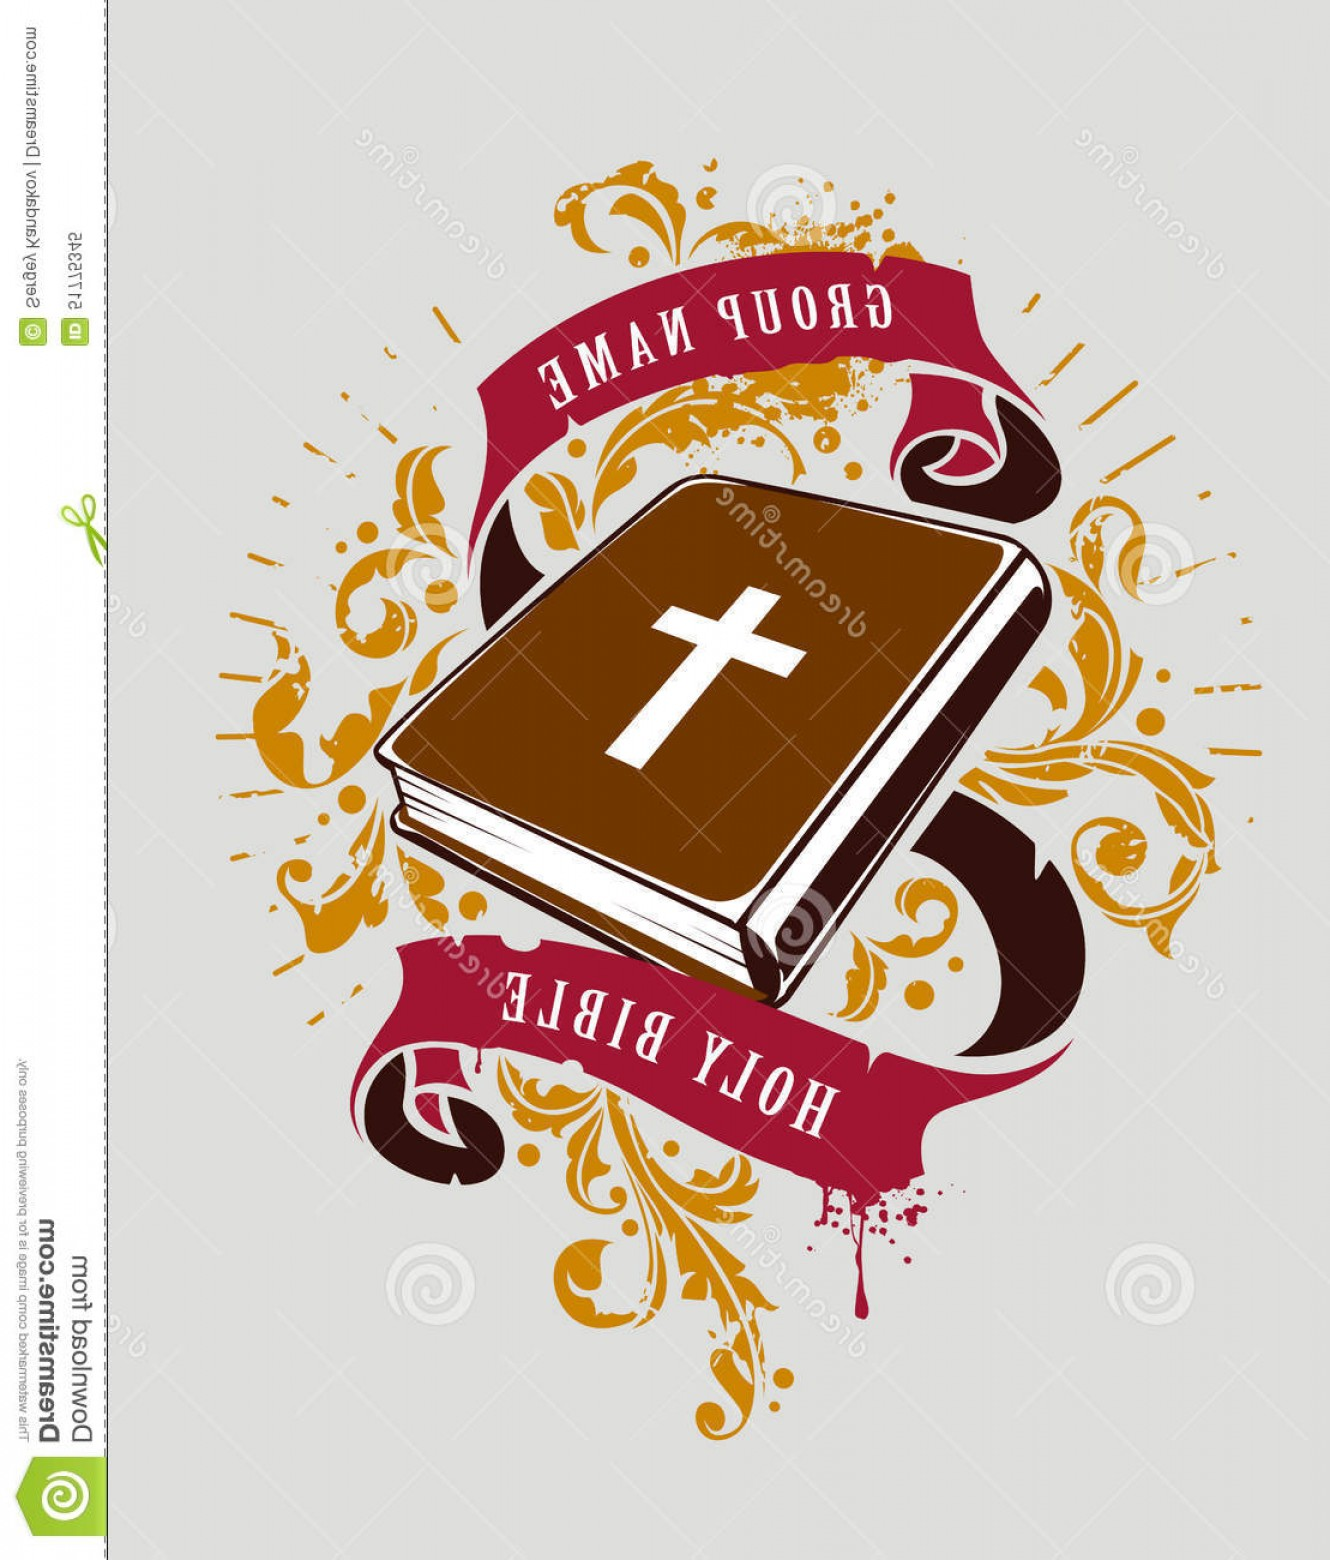 Holy Bible Vector: Stock Illustration Bible Vector Grunge Illustration Holy Ribbons Florals Print Image